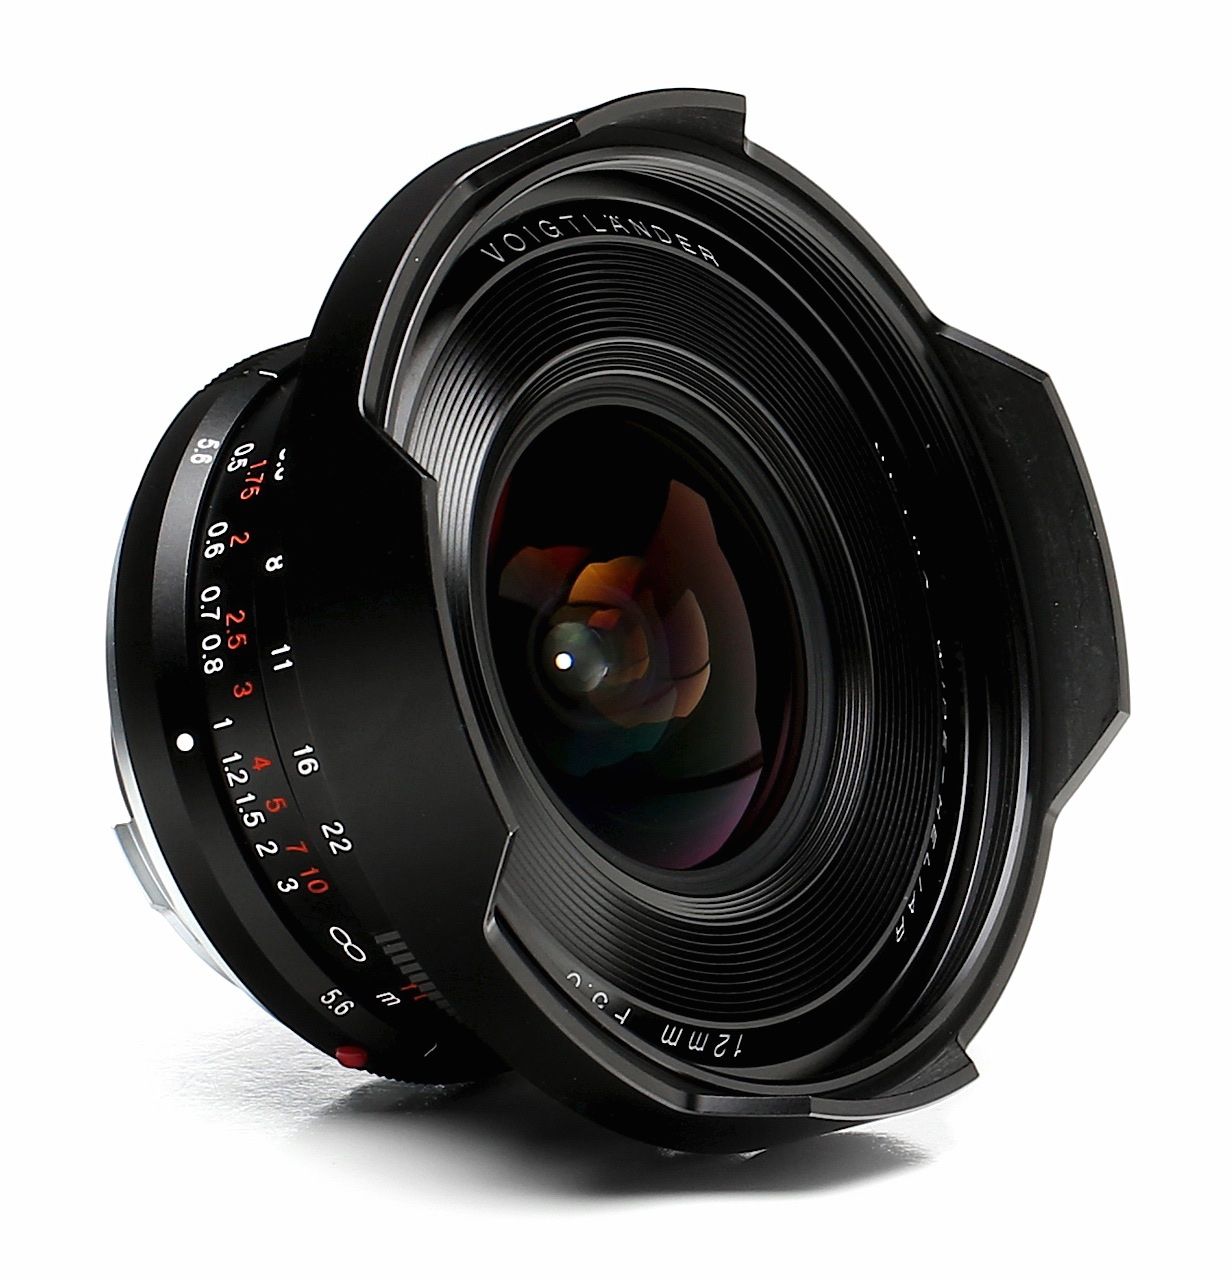 Voigtlander 12mm f/5.6 lens review - Leica T camera - Wide angle lens photography